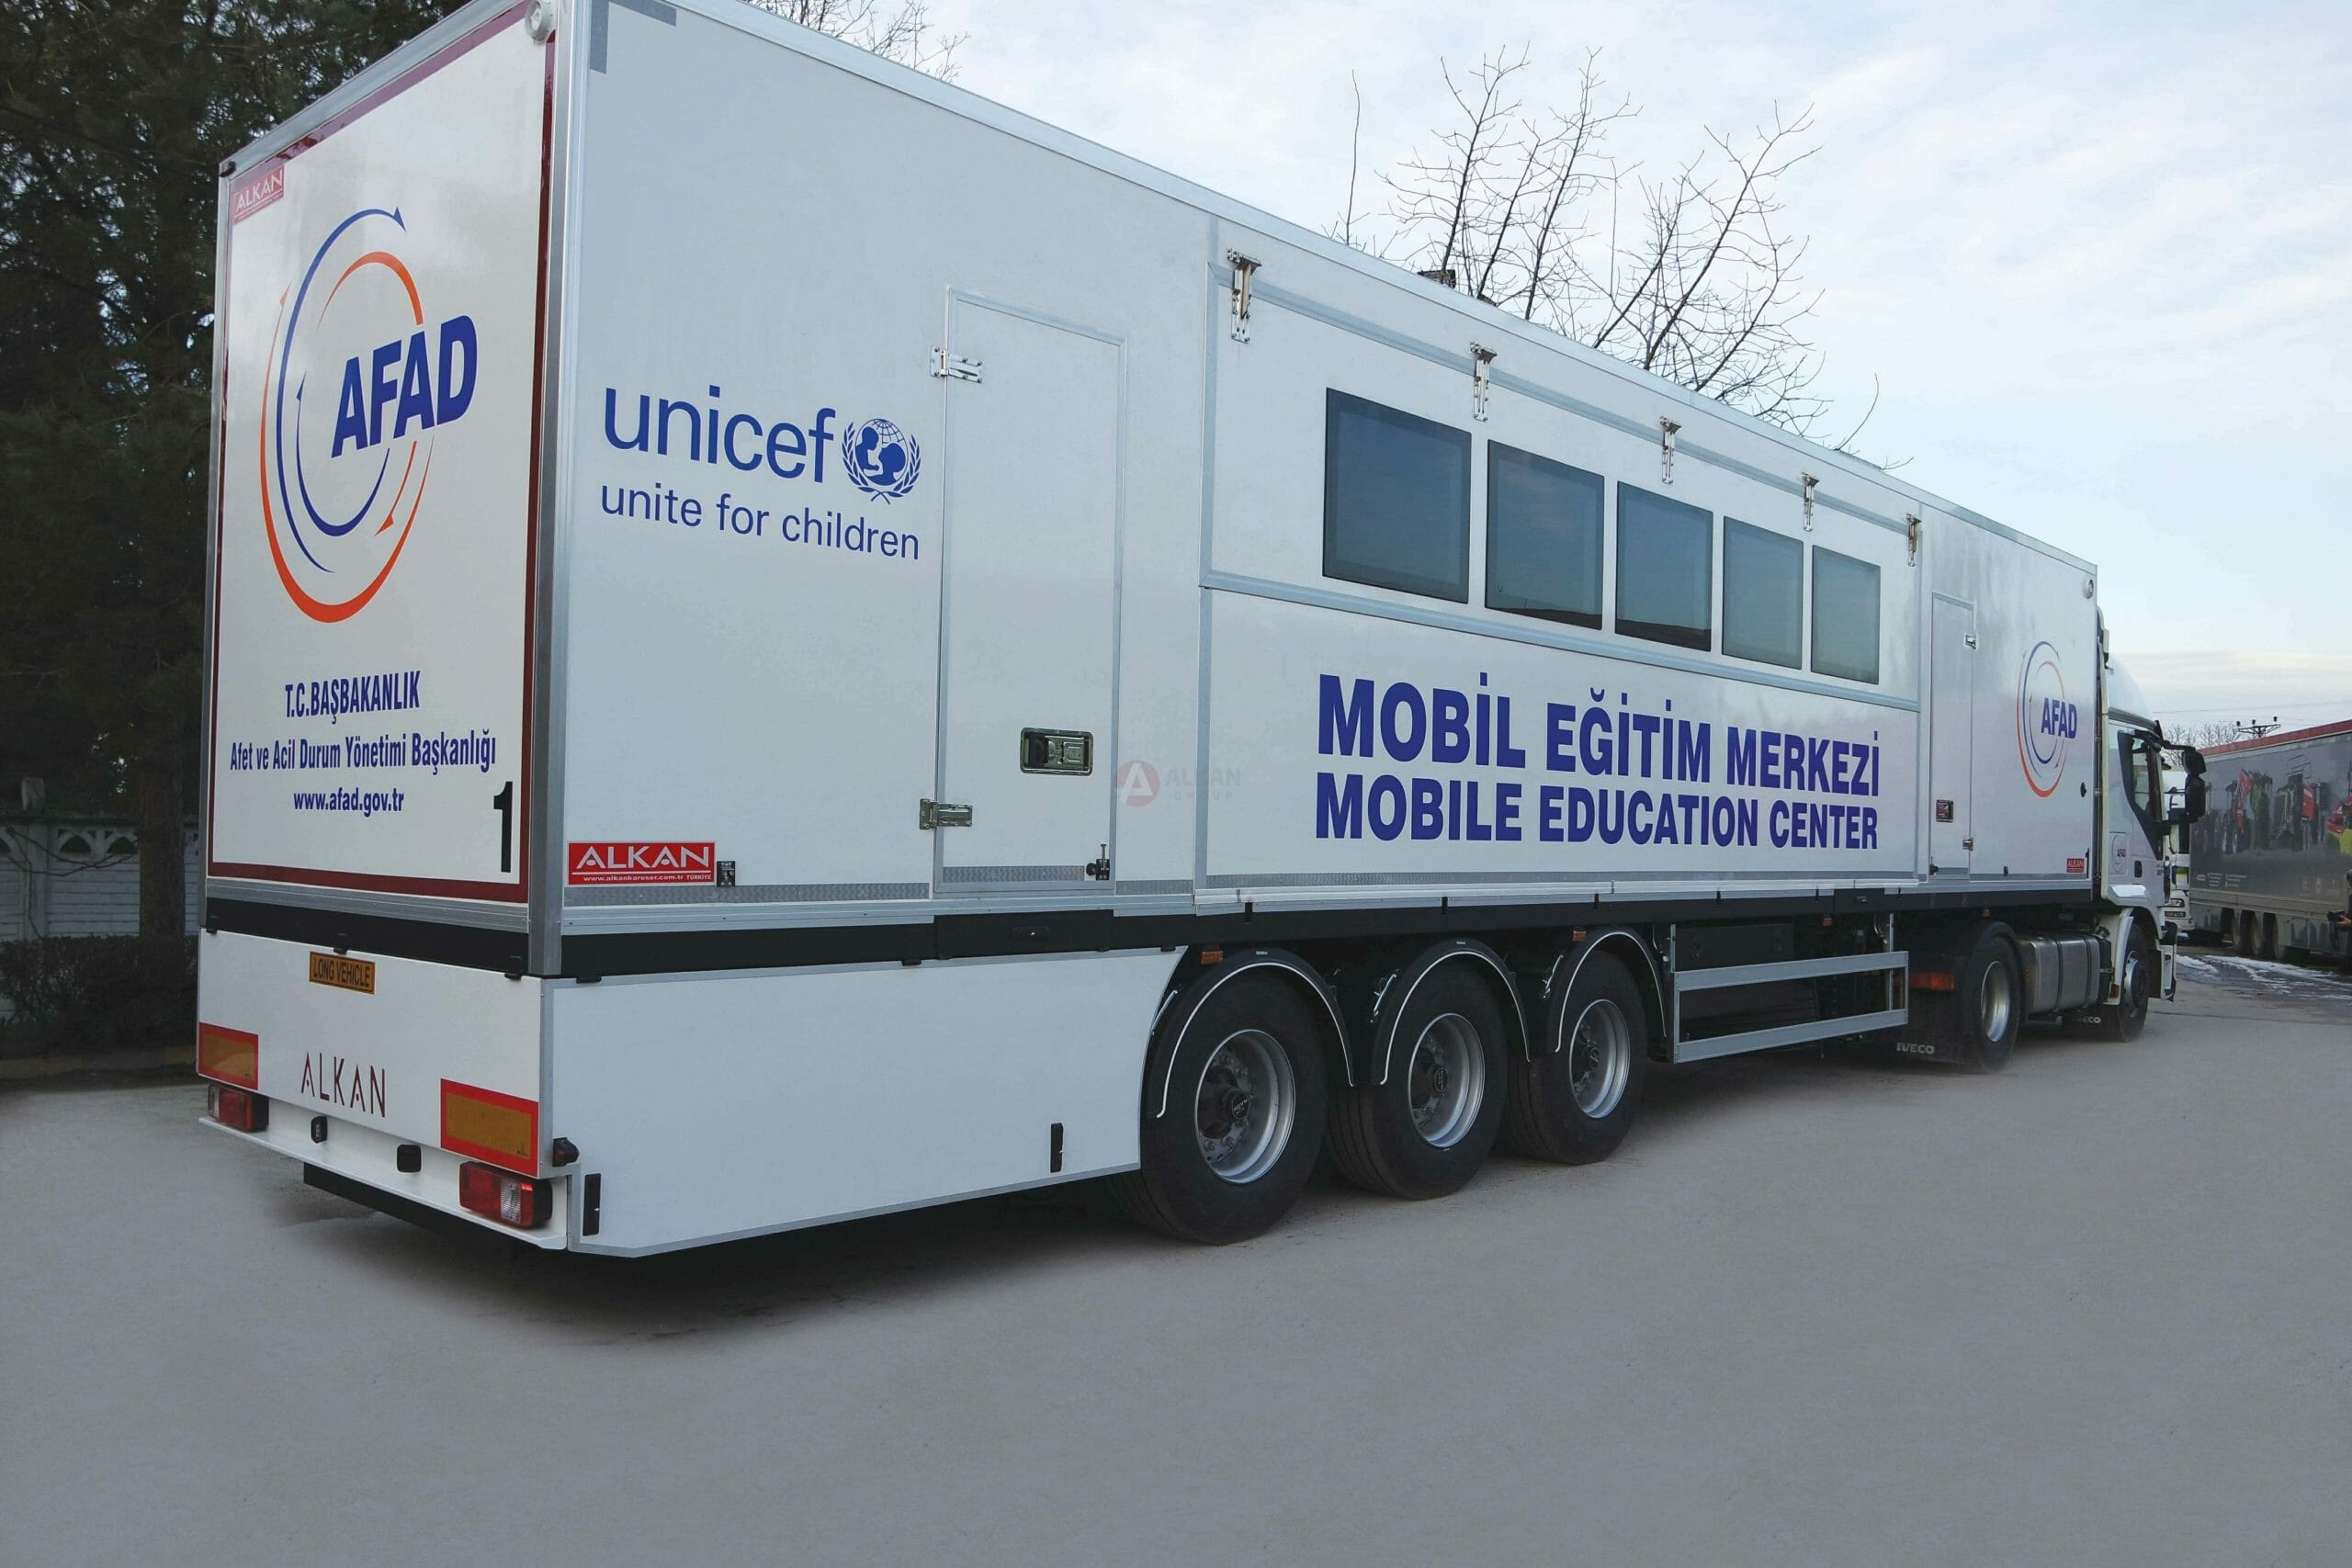 mobile-education-trailer-vehicle-2-scaled.jpg